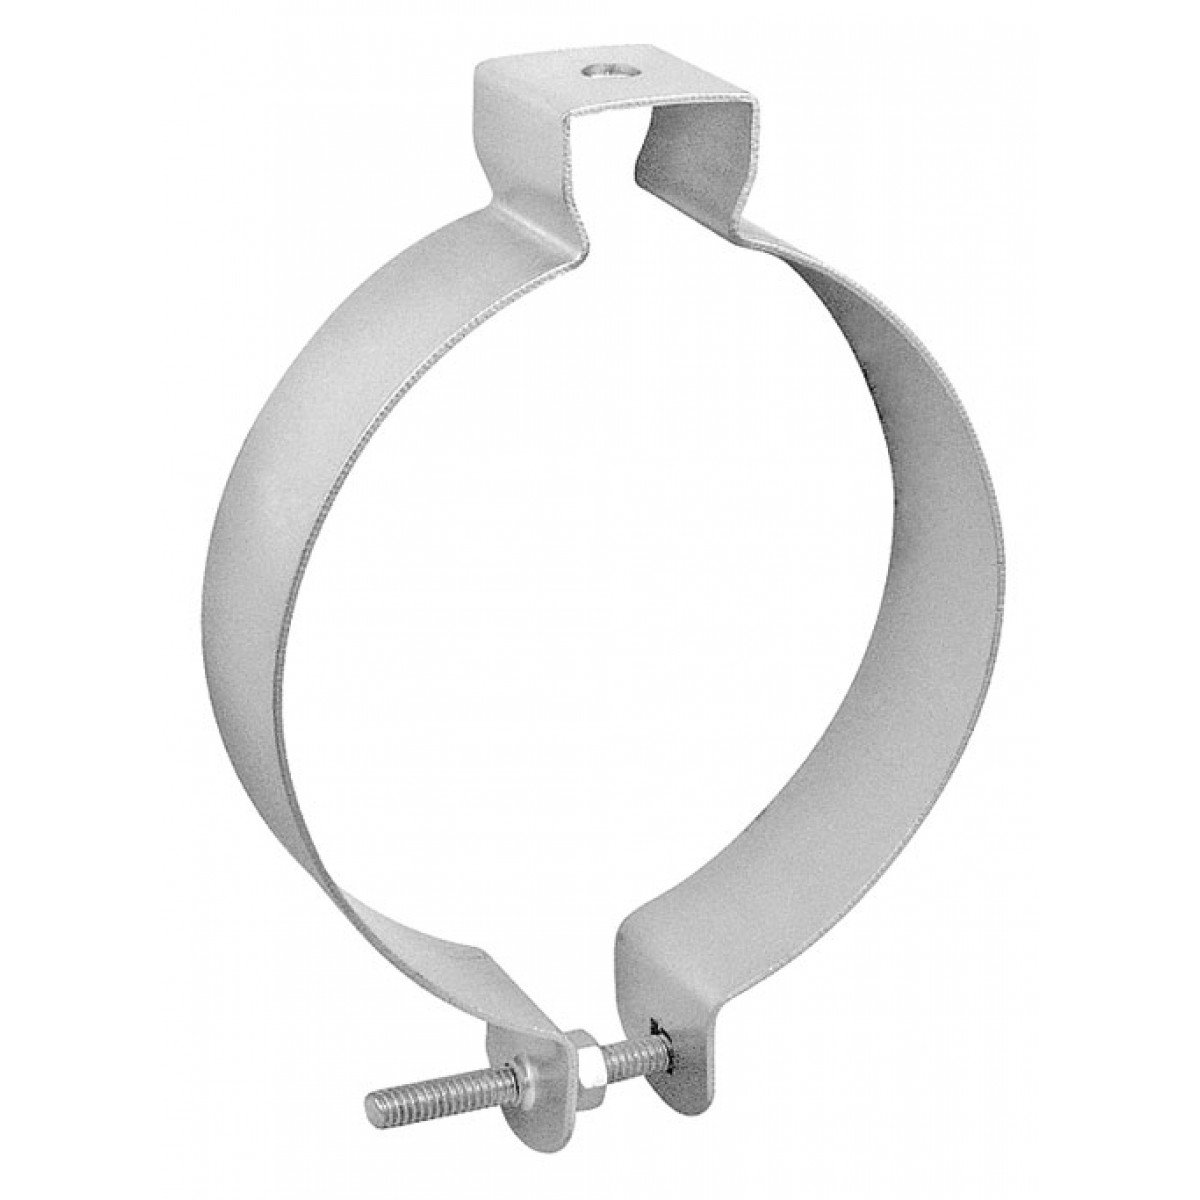 1 Pc, Stainless Steel Conduit Hanger, 2-1/2 In. Emt Or Rigid, 316Ss Used In Both Wet & Dry Locations to Support Runs of 2-1/2In Rigid/Imc & 2-1/2In Emt Conduits From Ceilings & Walls